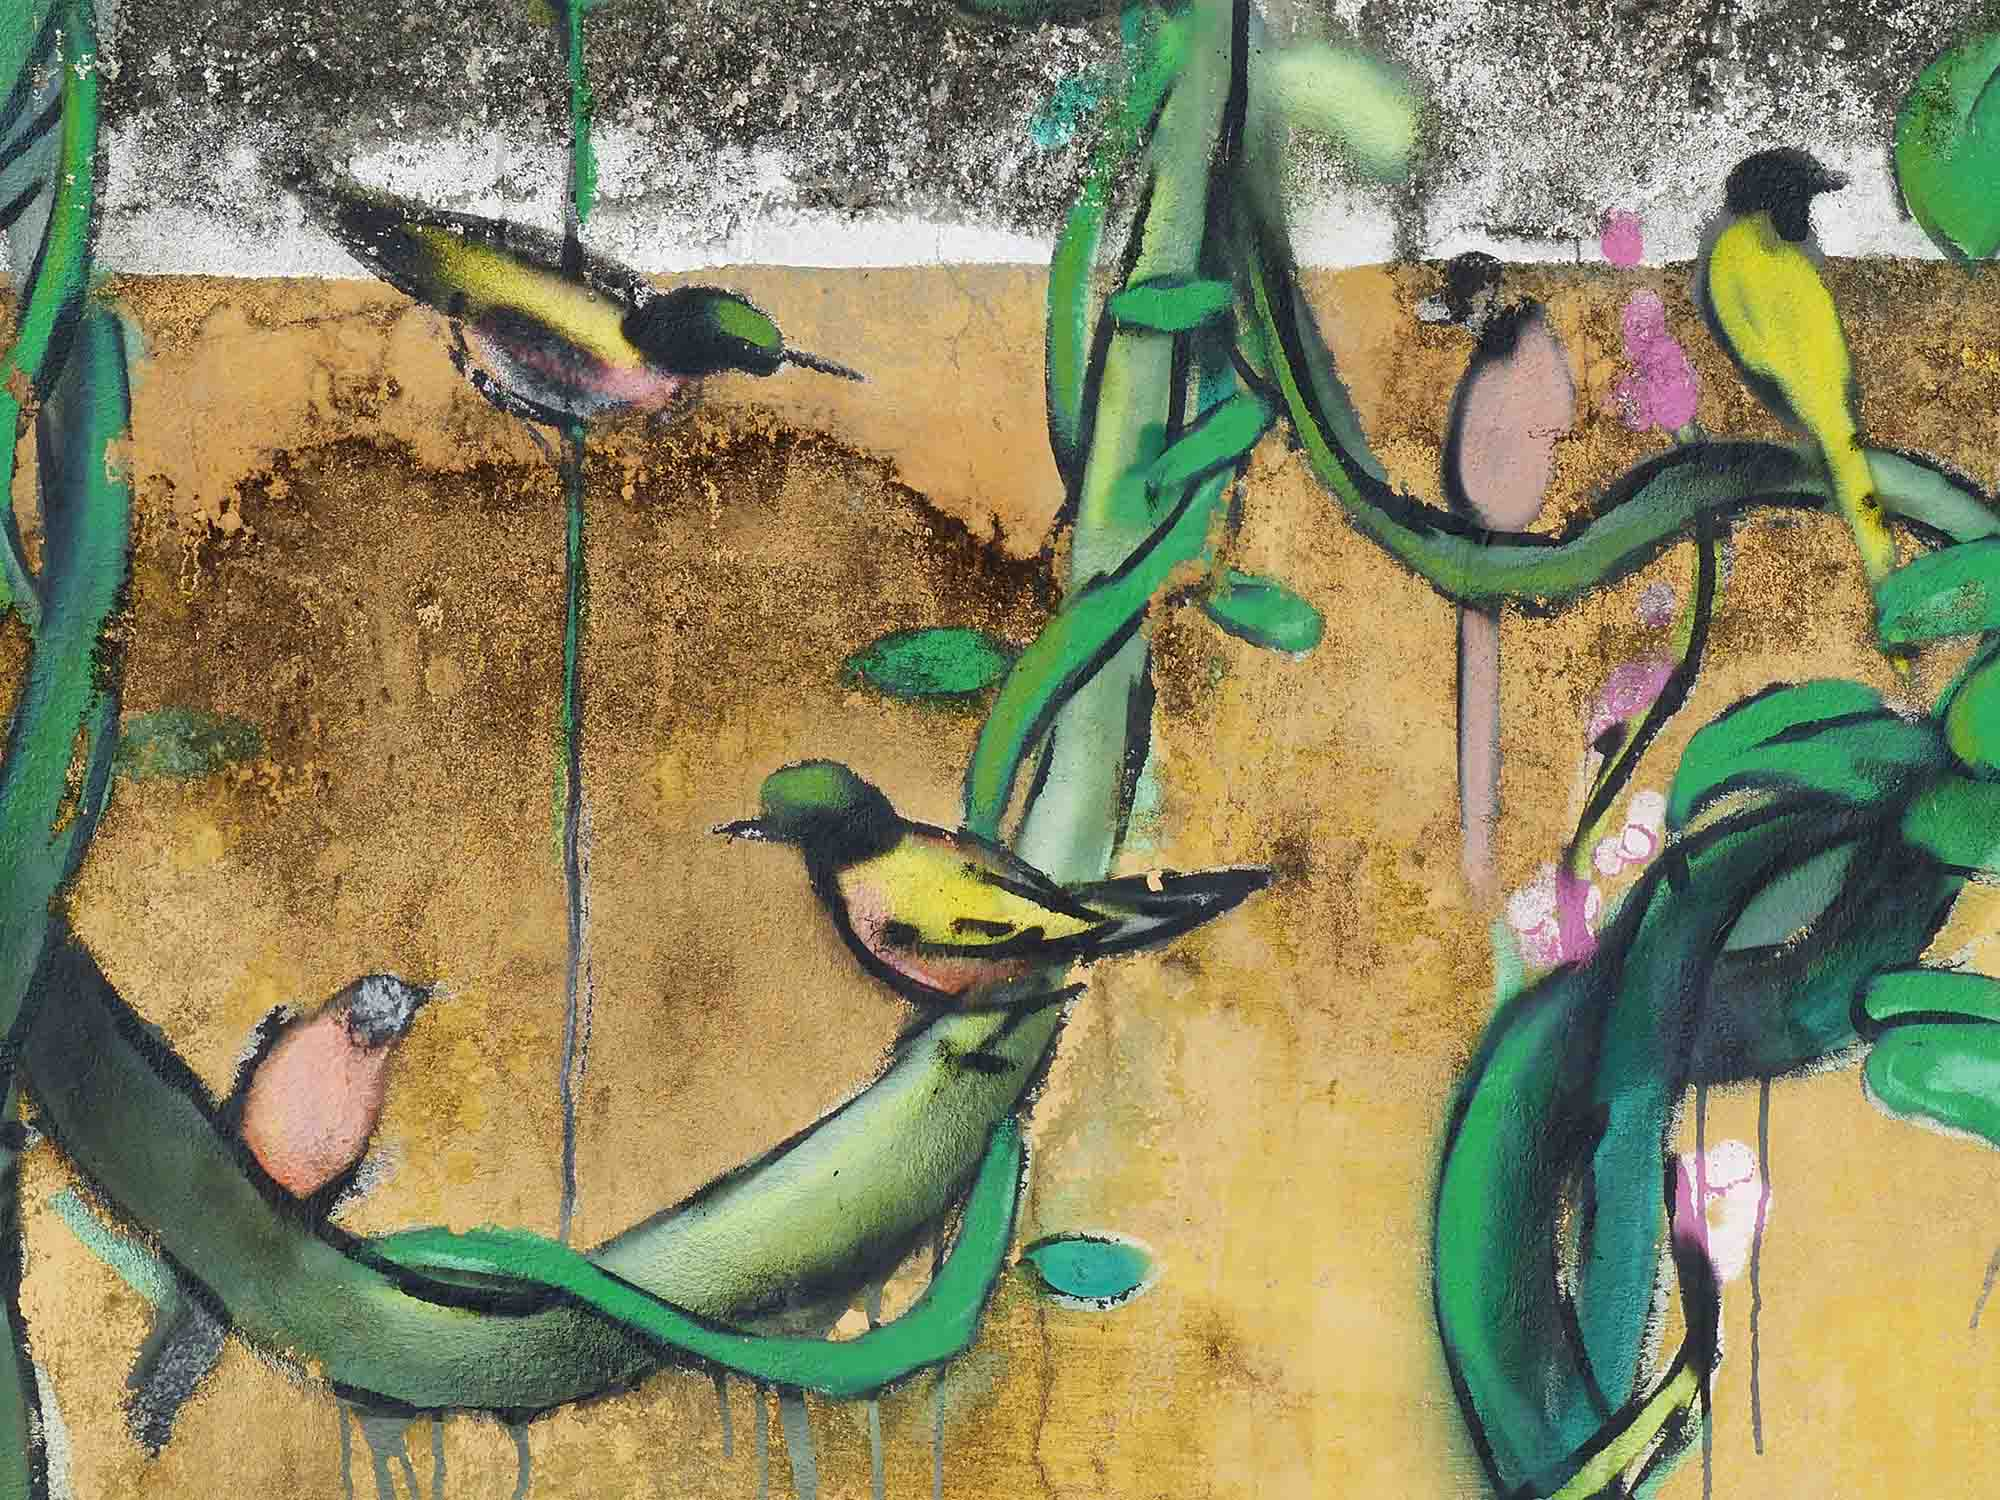 Mural of birds and vines